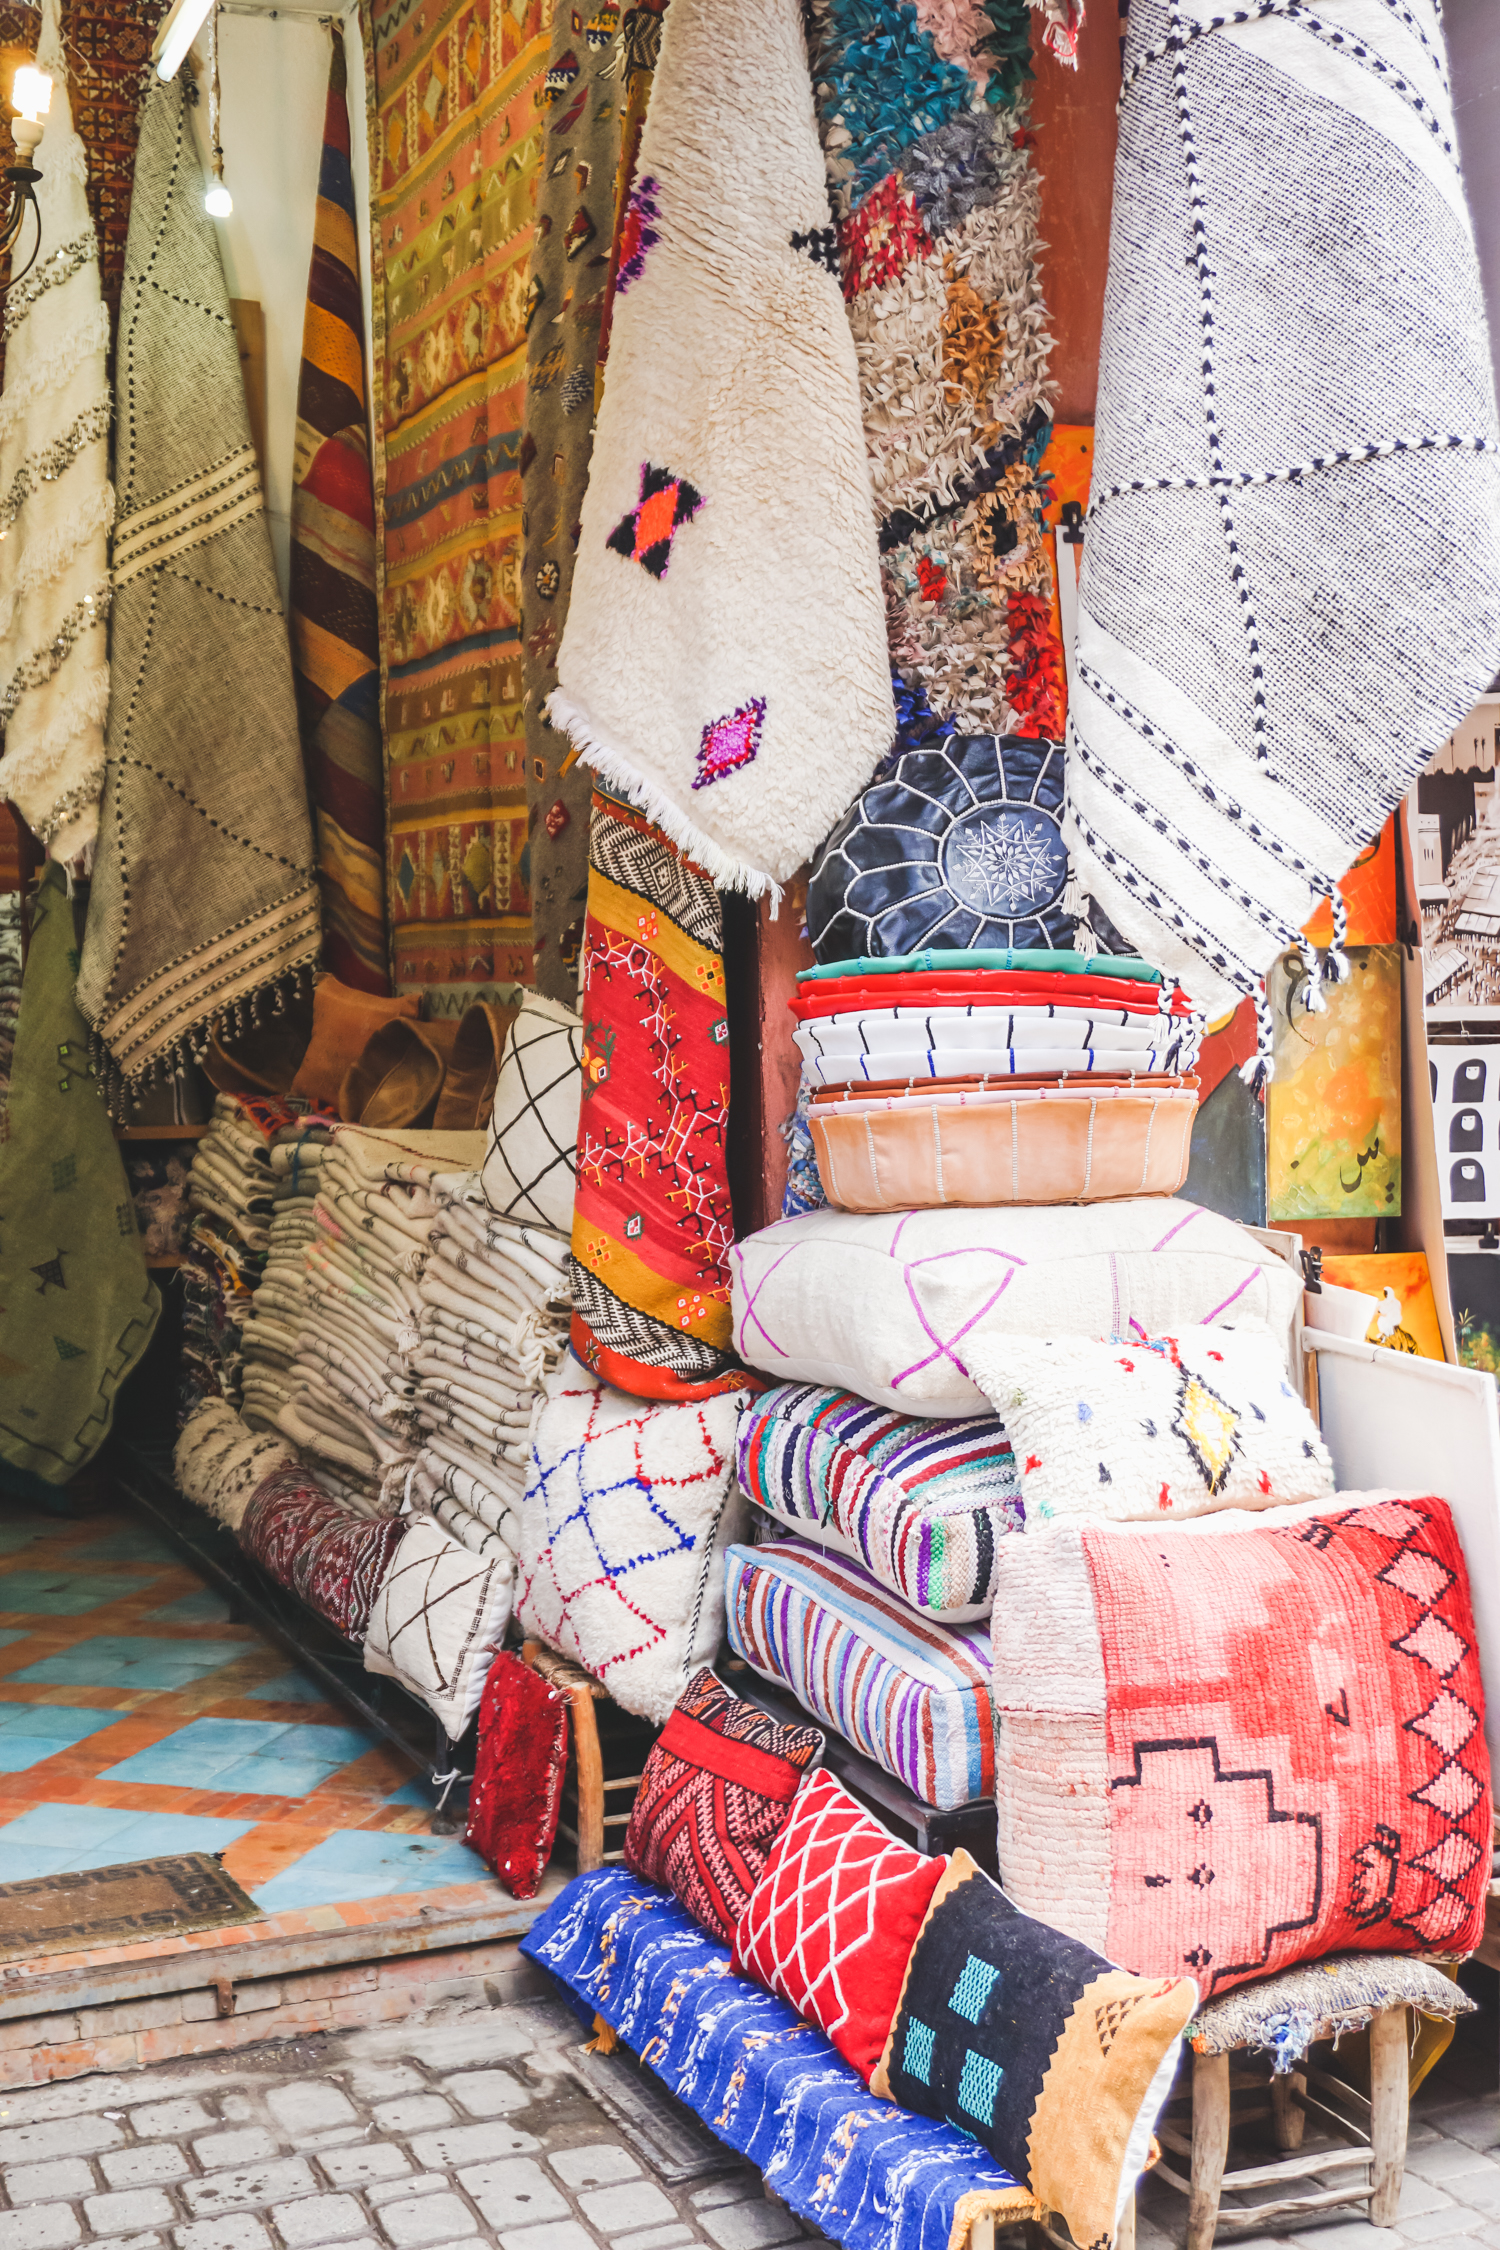 Your Guide to Bargaining in the Souks of Marrakech- Monique McHugh Blog